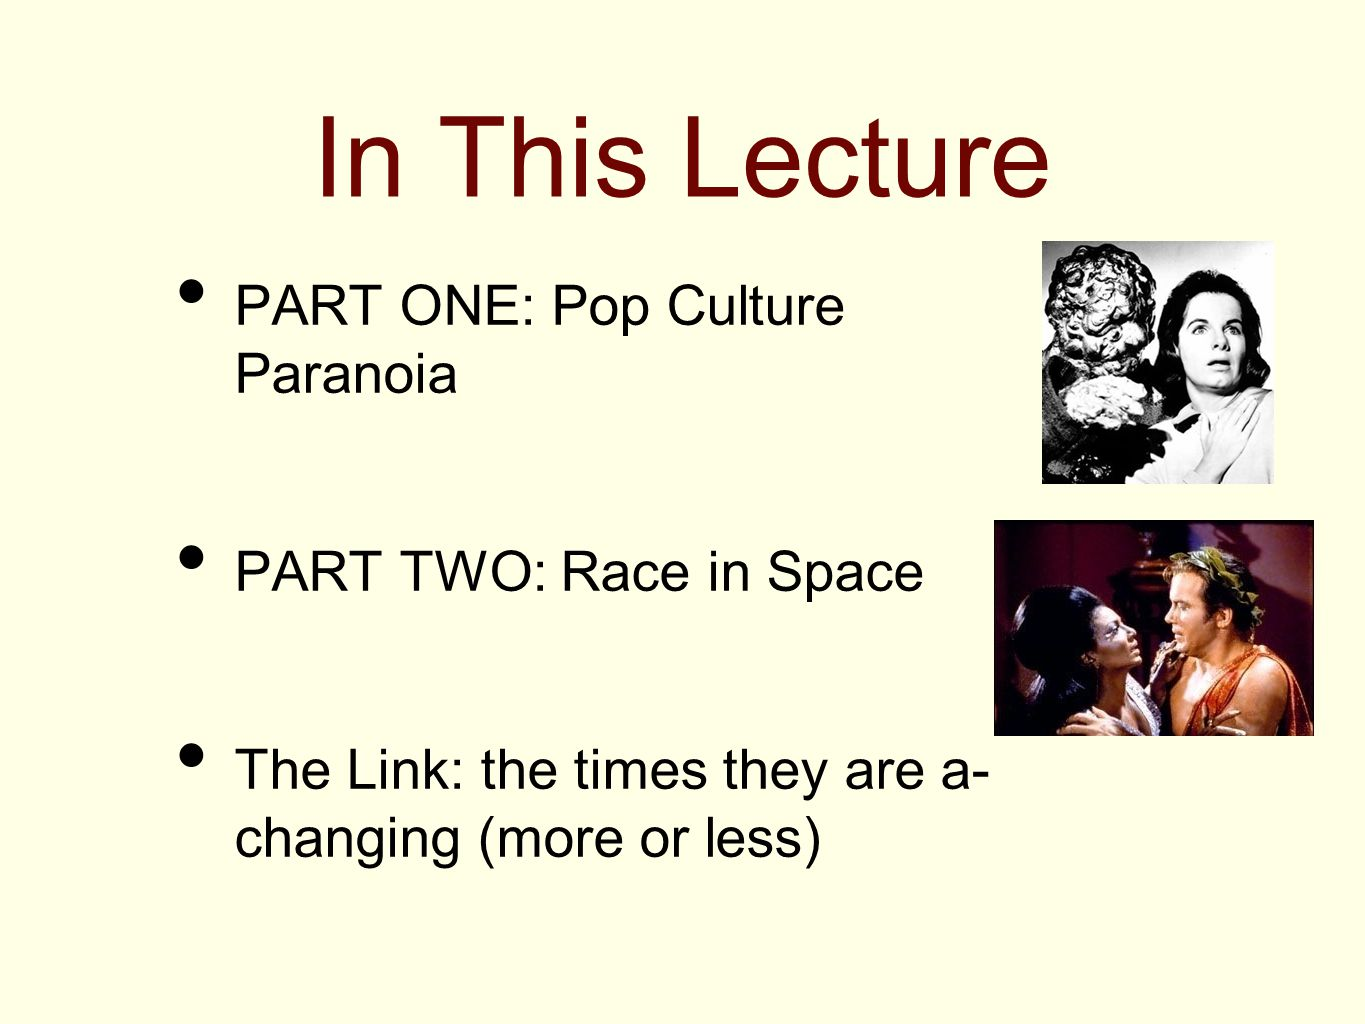 In This Lecture PART ONE: Pop Culture Paranoia PART TWO: Race in Space The Link: the times they are a- changing (more or less)